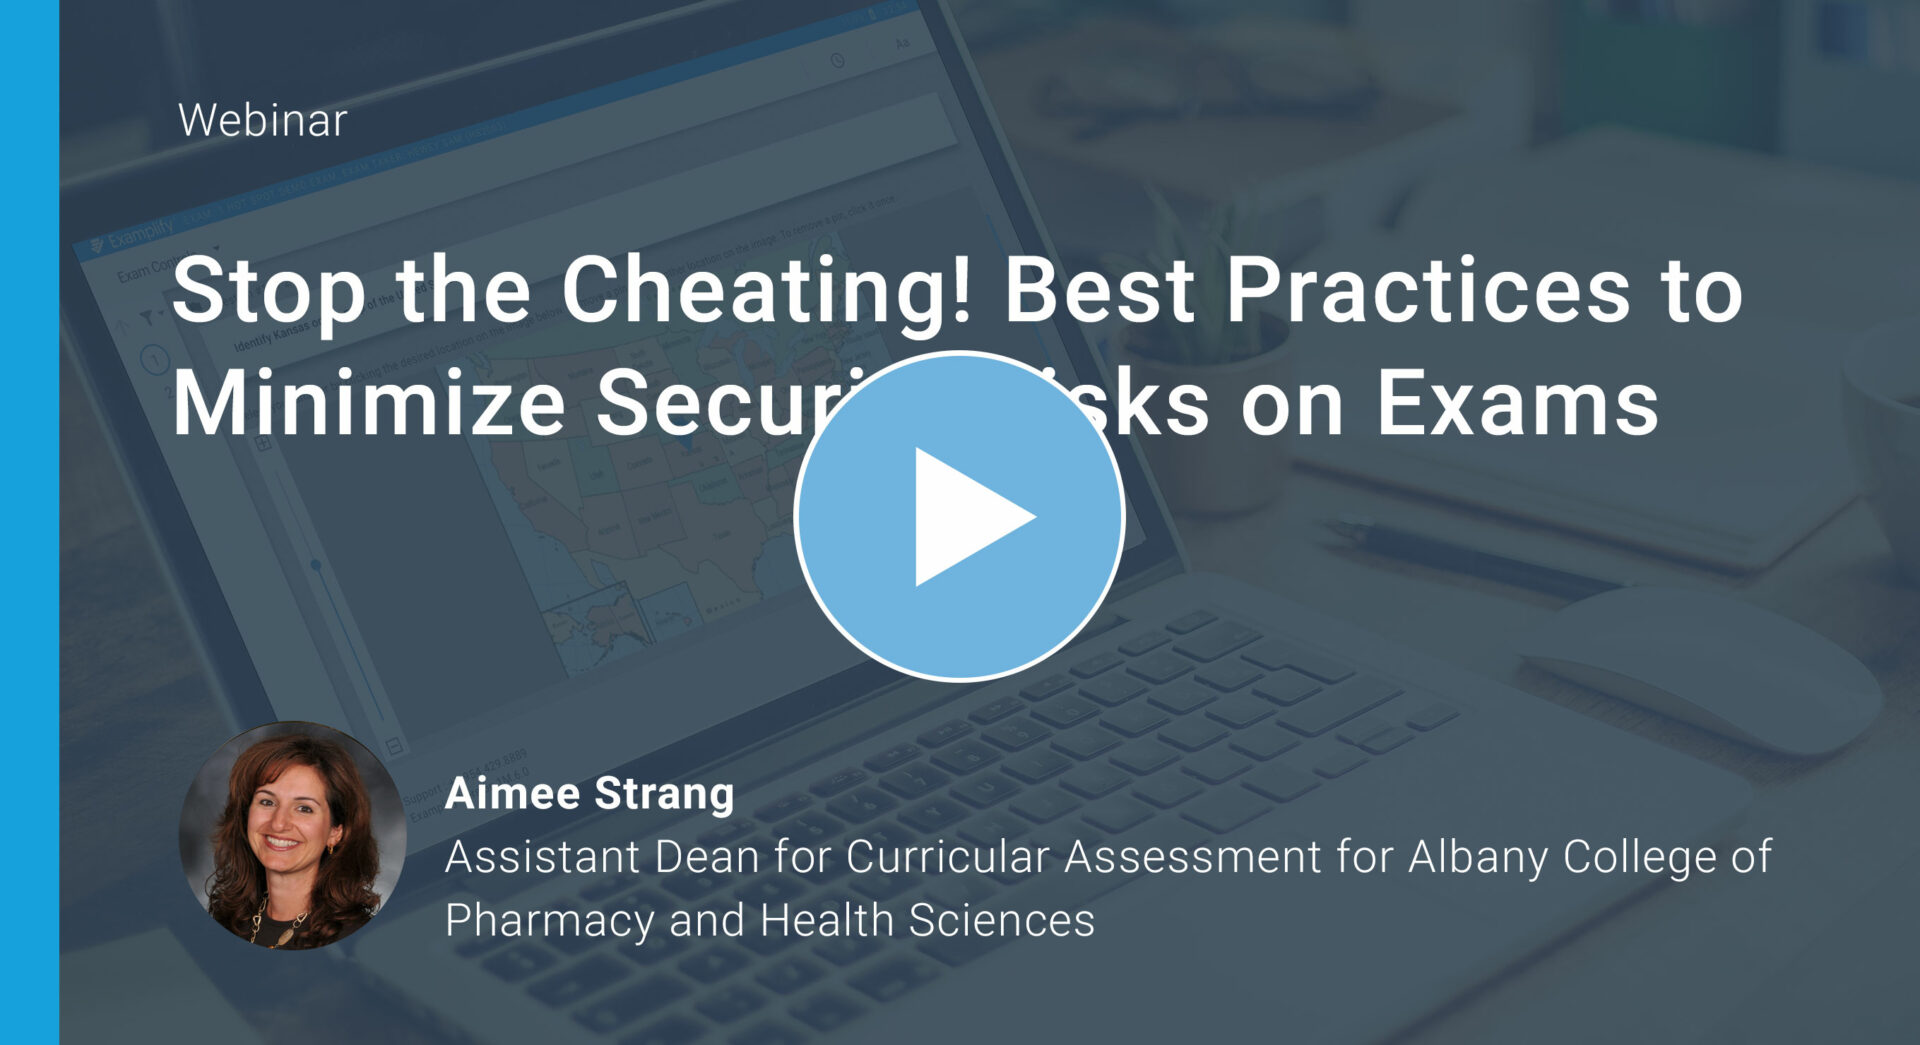 Using a Secure Exam Tool to Prevent Student Academic Dishonesty